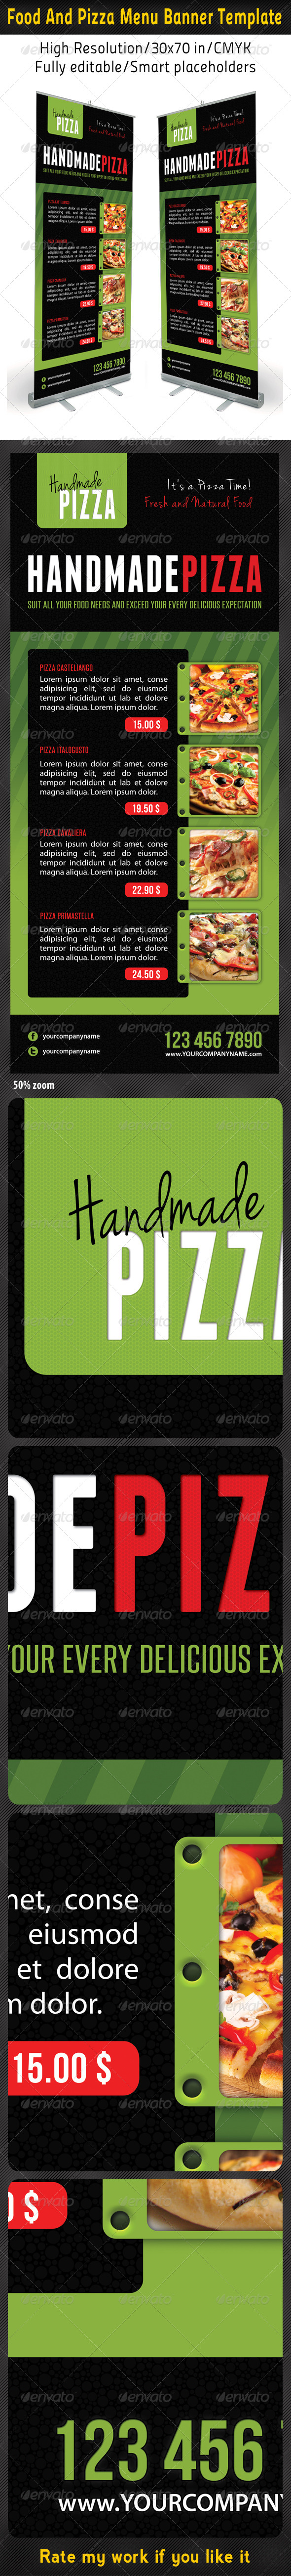 GraphicRiver Food And Pizza Menu Banner Template 06 6254199